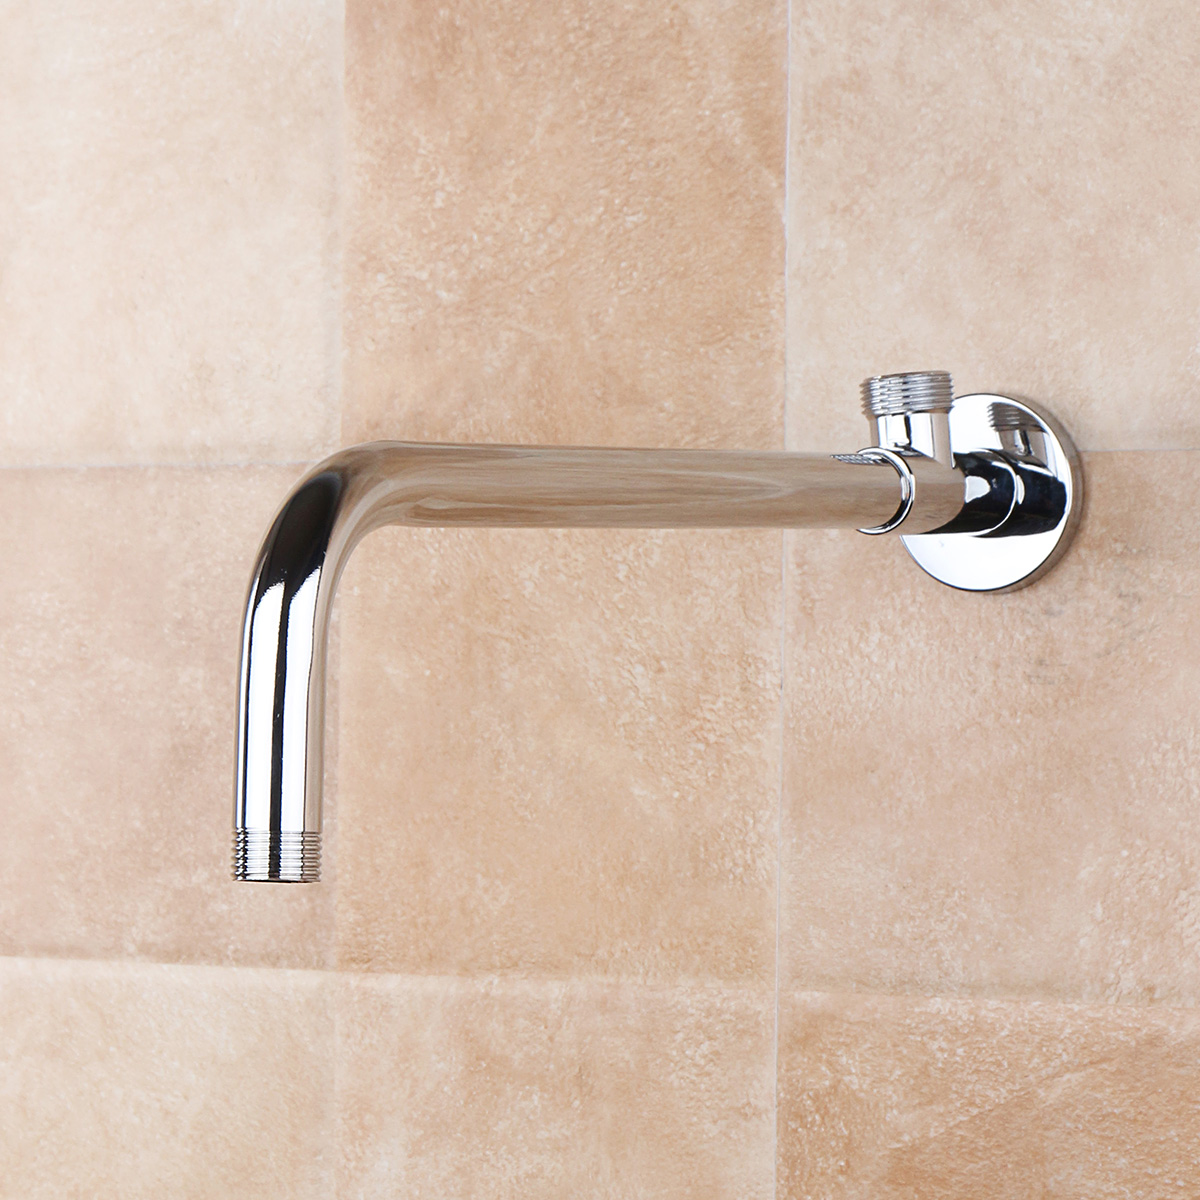 Stainless Steel Shower Extension Arm Home Bathroom Wall